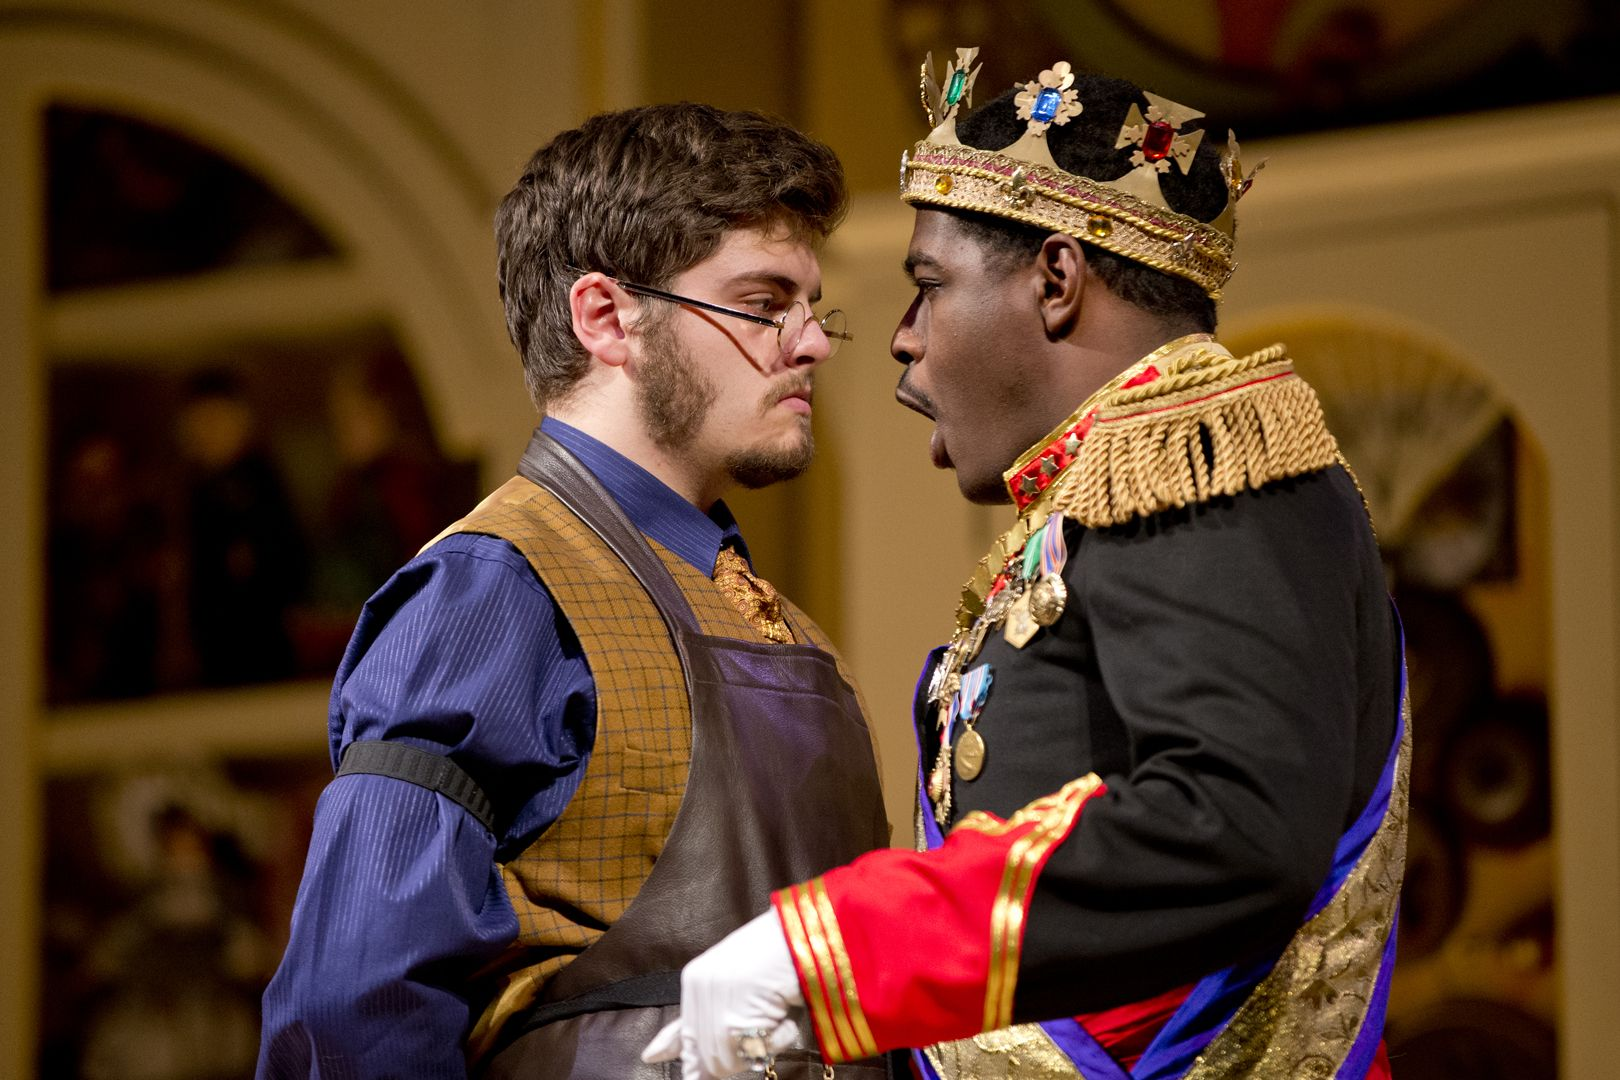 """Colin McIntire '16 of Darien, Conn., plays Drosselmeier and Brennen Malone '17 of Philadelphia plays the royal in """"Marie and the Nutcracker,"""" a new take on the old story by Dana Professor of Theater Martin Andrucki. Shows continue through Monday, Nov. 9. (Phyllis Graber Jensen/Bates College)"""